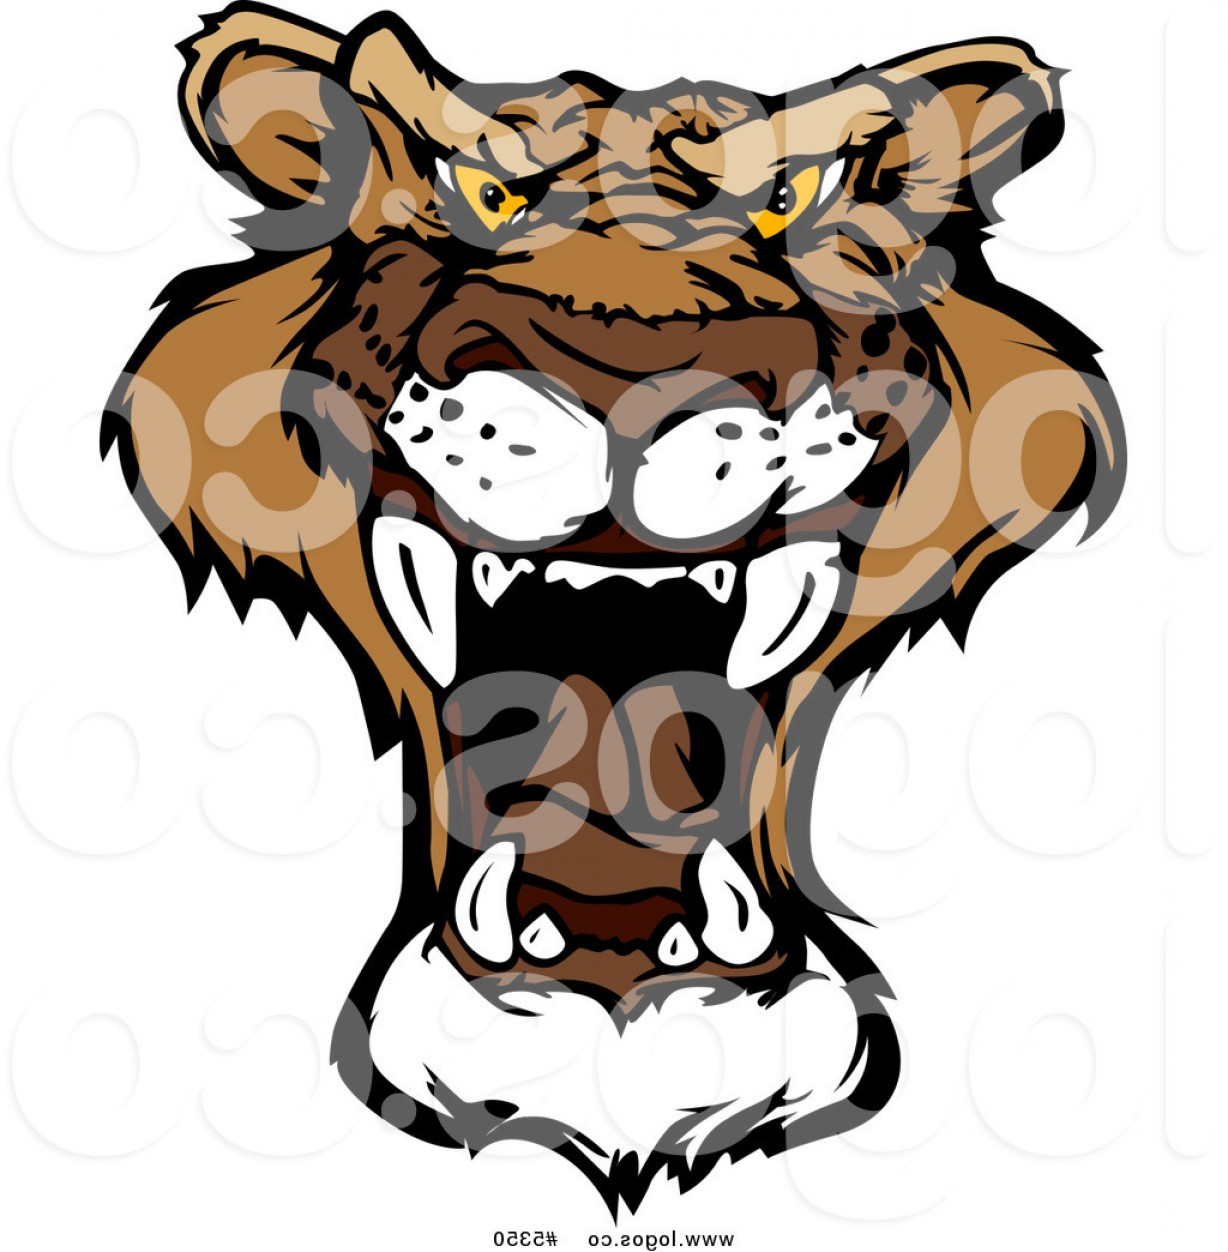 1228x1252 Royalty Free Vector Of A Logo Of A Roaring Mountain Lion By